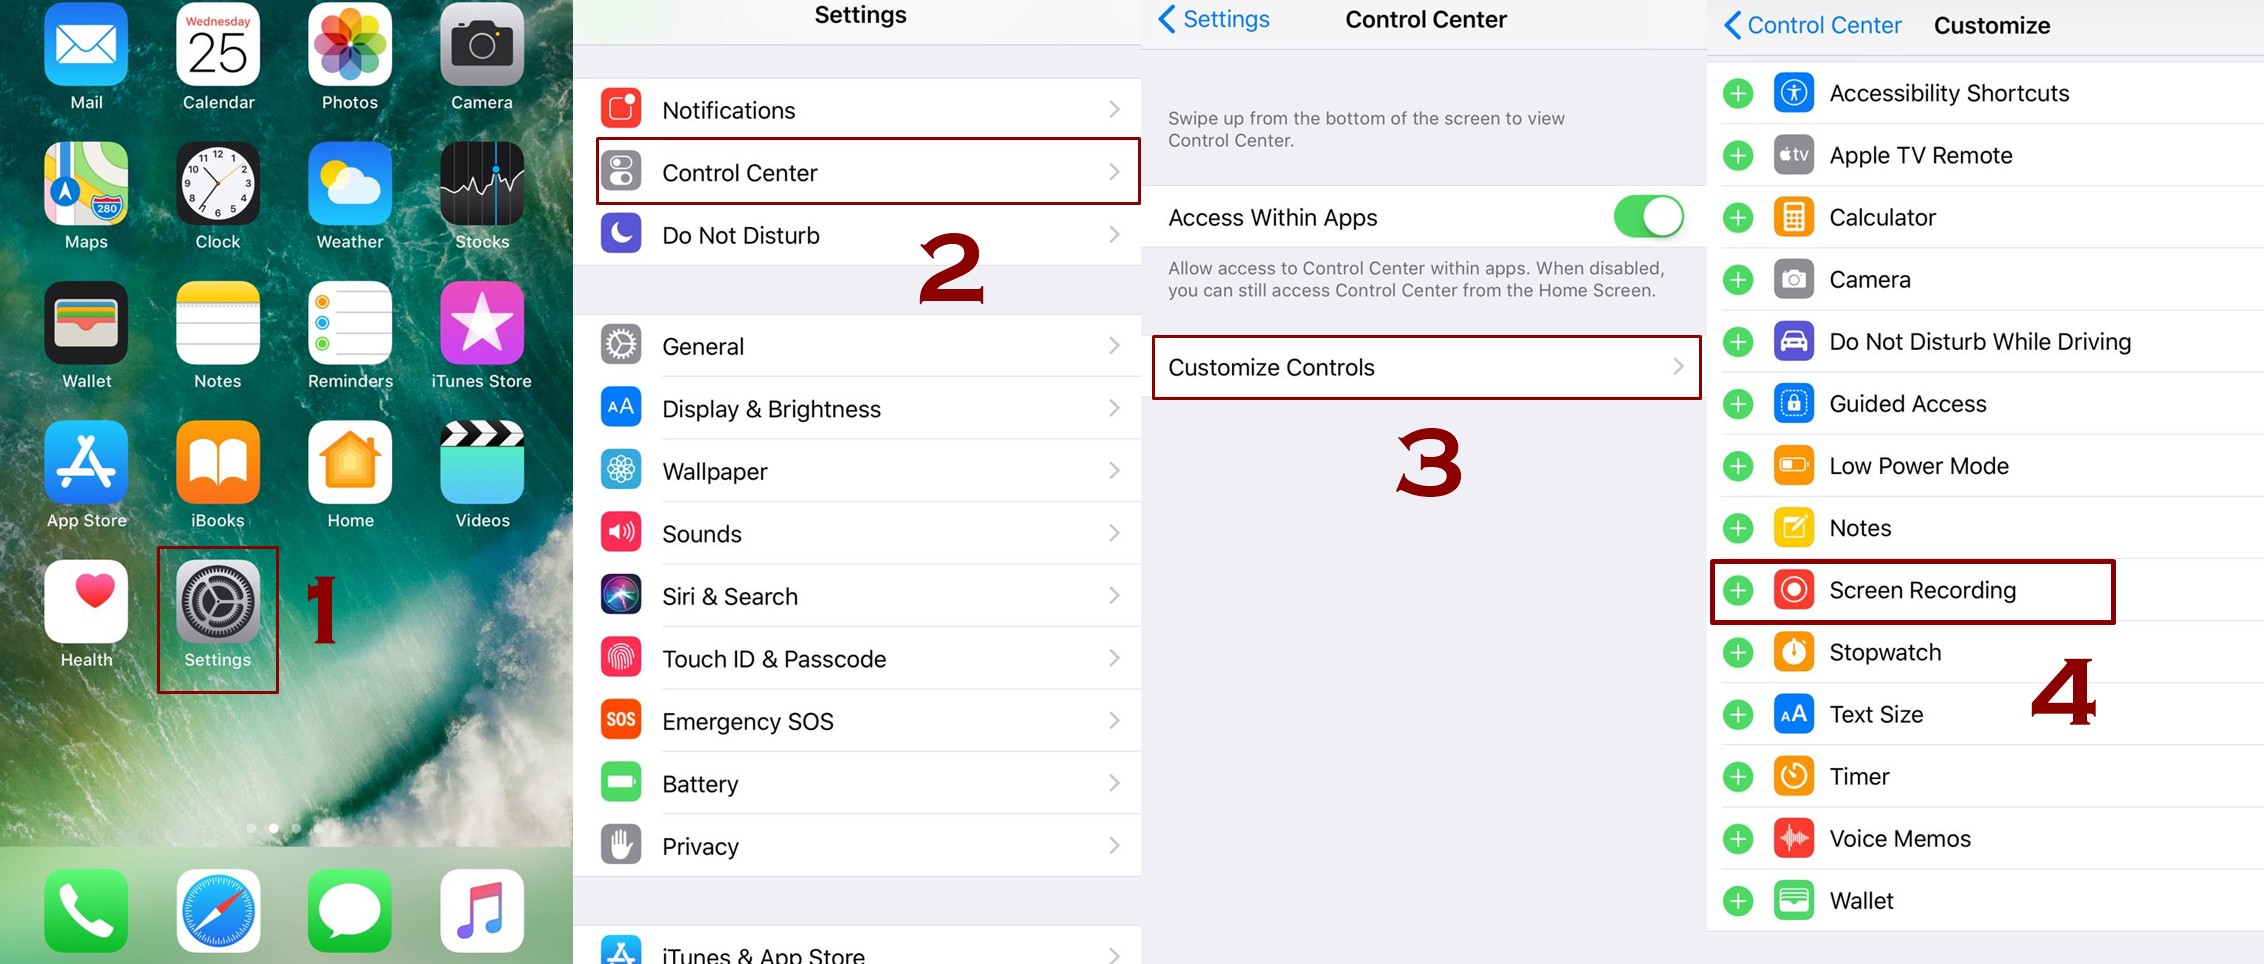 how to add screen recorder in control center ios 11 - Everything About Screen Recording Feature in IOS 11